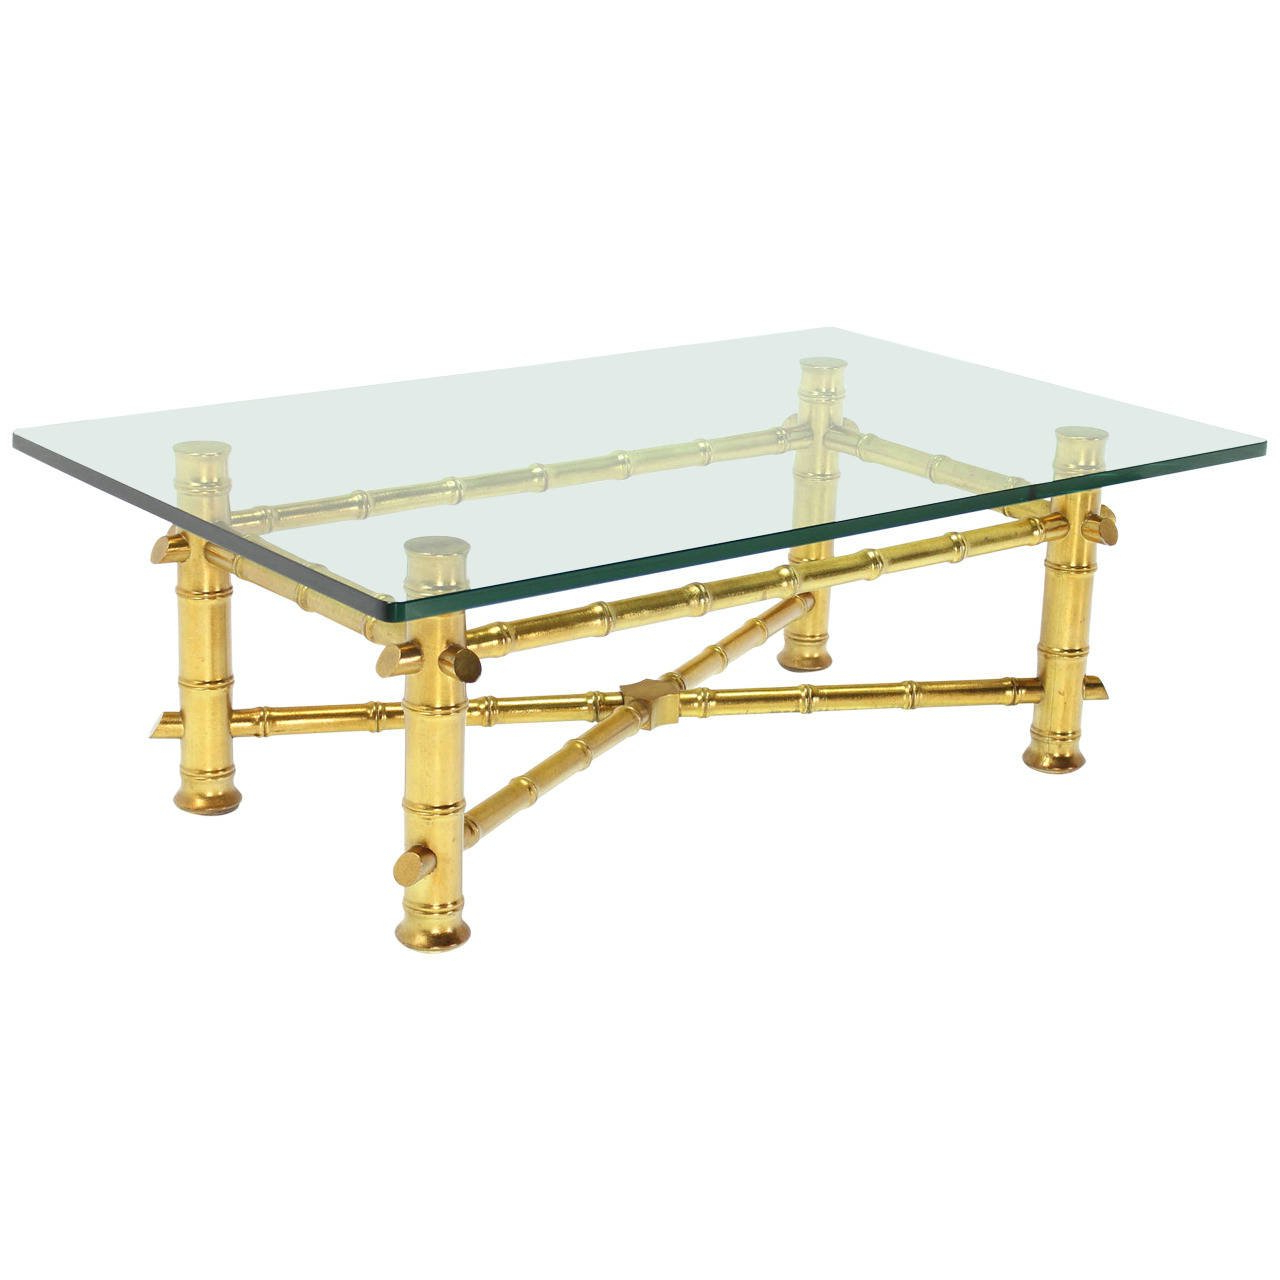 Well Known Gold Leaf Faux Bamboo Base Coffee Table With Thick Glass Top For Pertaining To Gold Leaf Collection Coffee Tables (View 19 of 20)